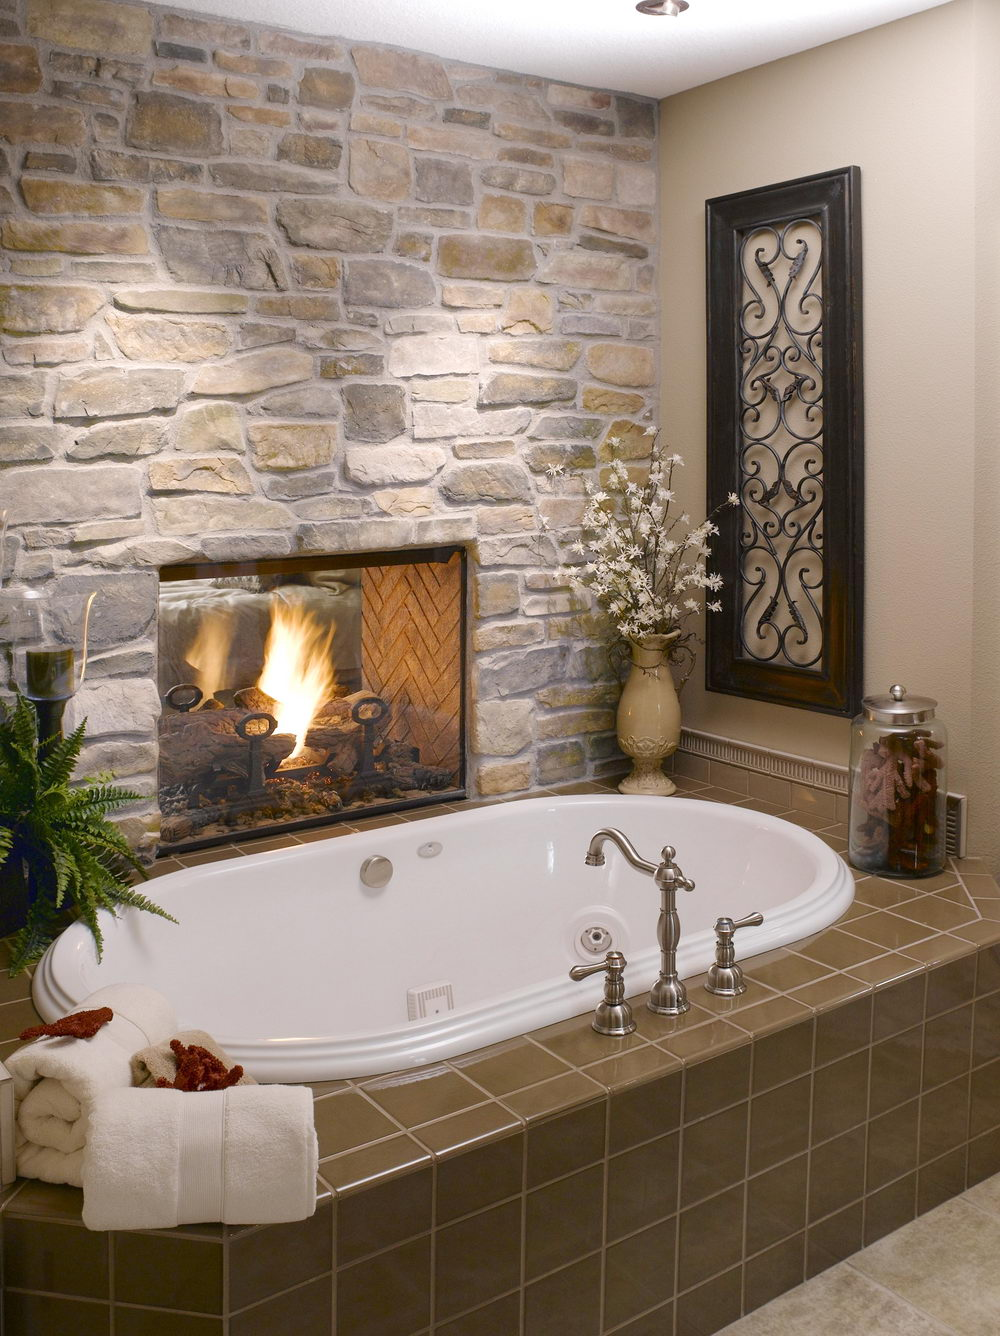 Rustic Stone Bathroom Designs. Natural Stones Are Charming And Beautiful In  Their Own Way Look